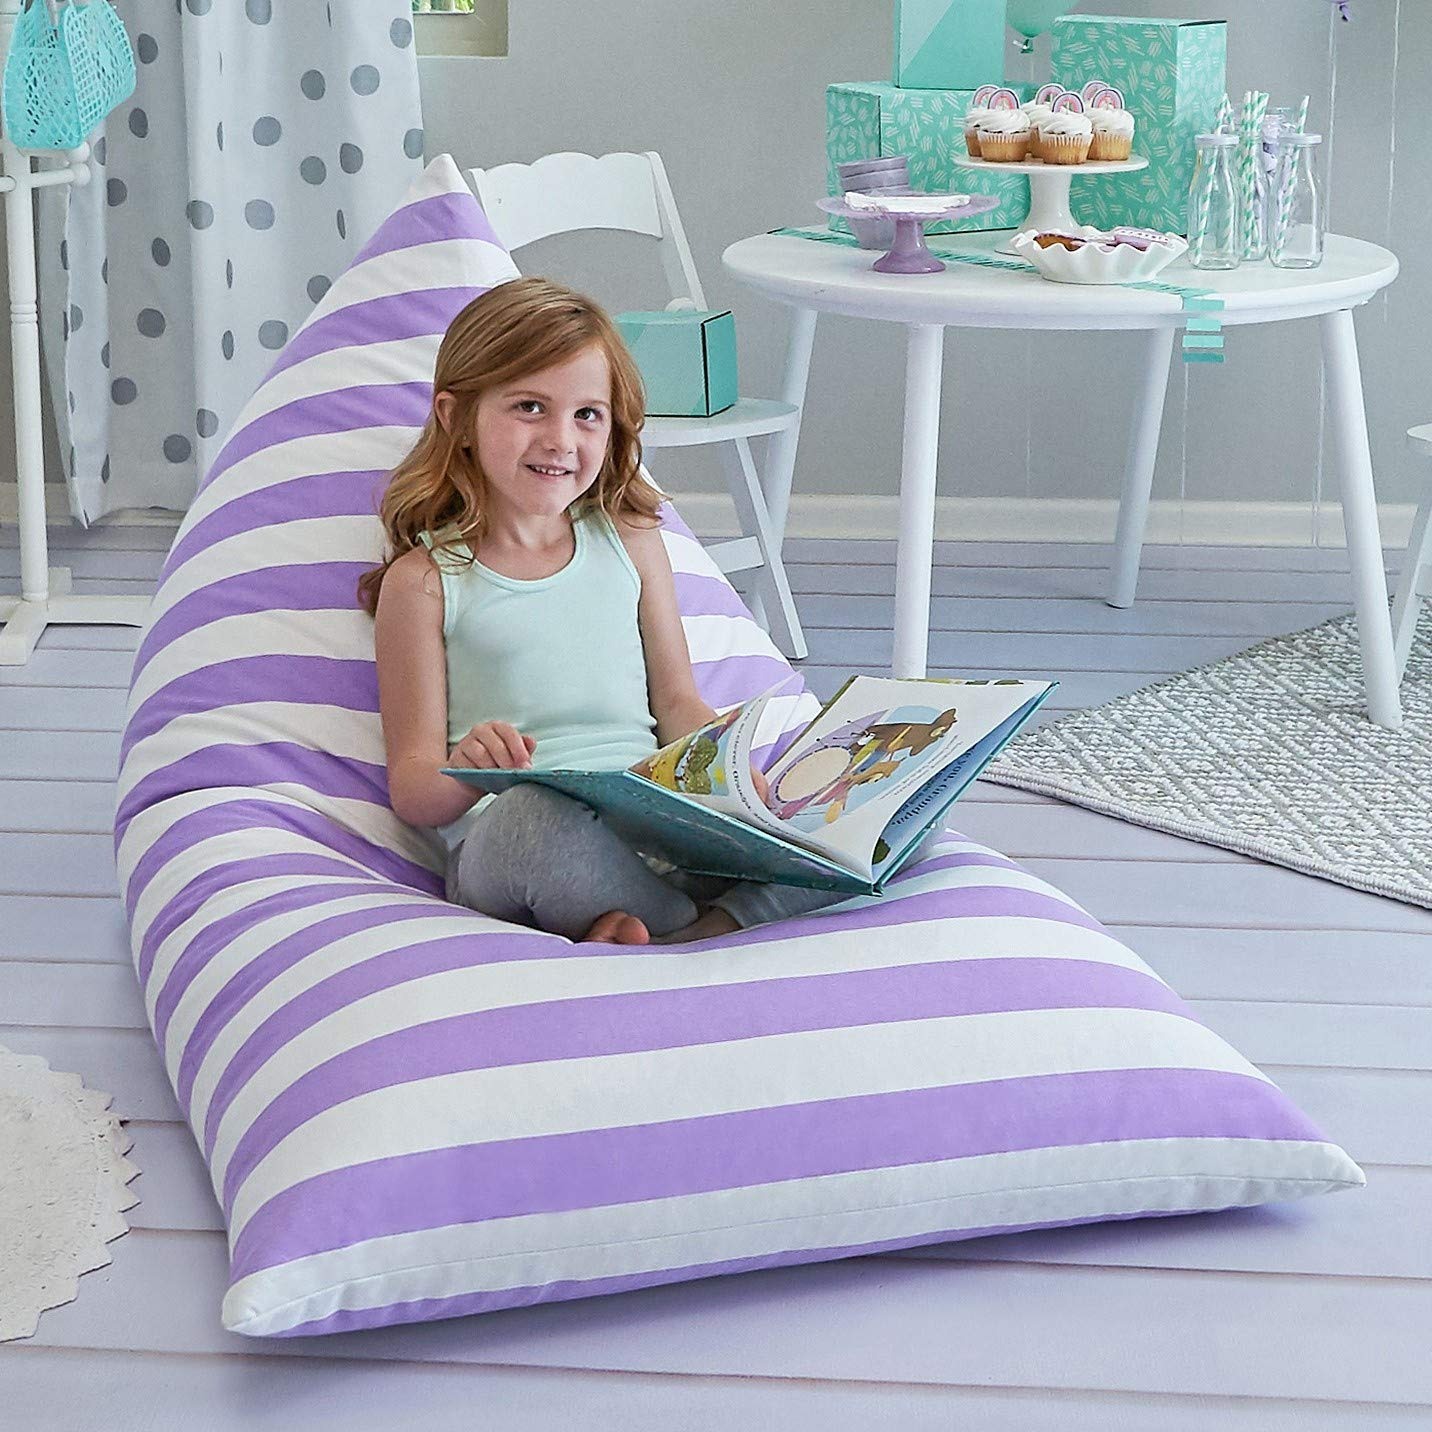 Butterfly Craze Large Stuff Animal Storage Bean Bag Chair Cover for Kids Teens (Purple/White Striped) by Butterfly Craze